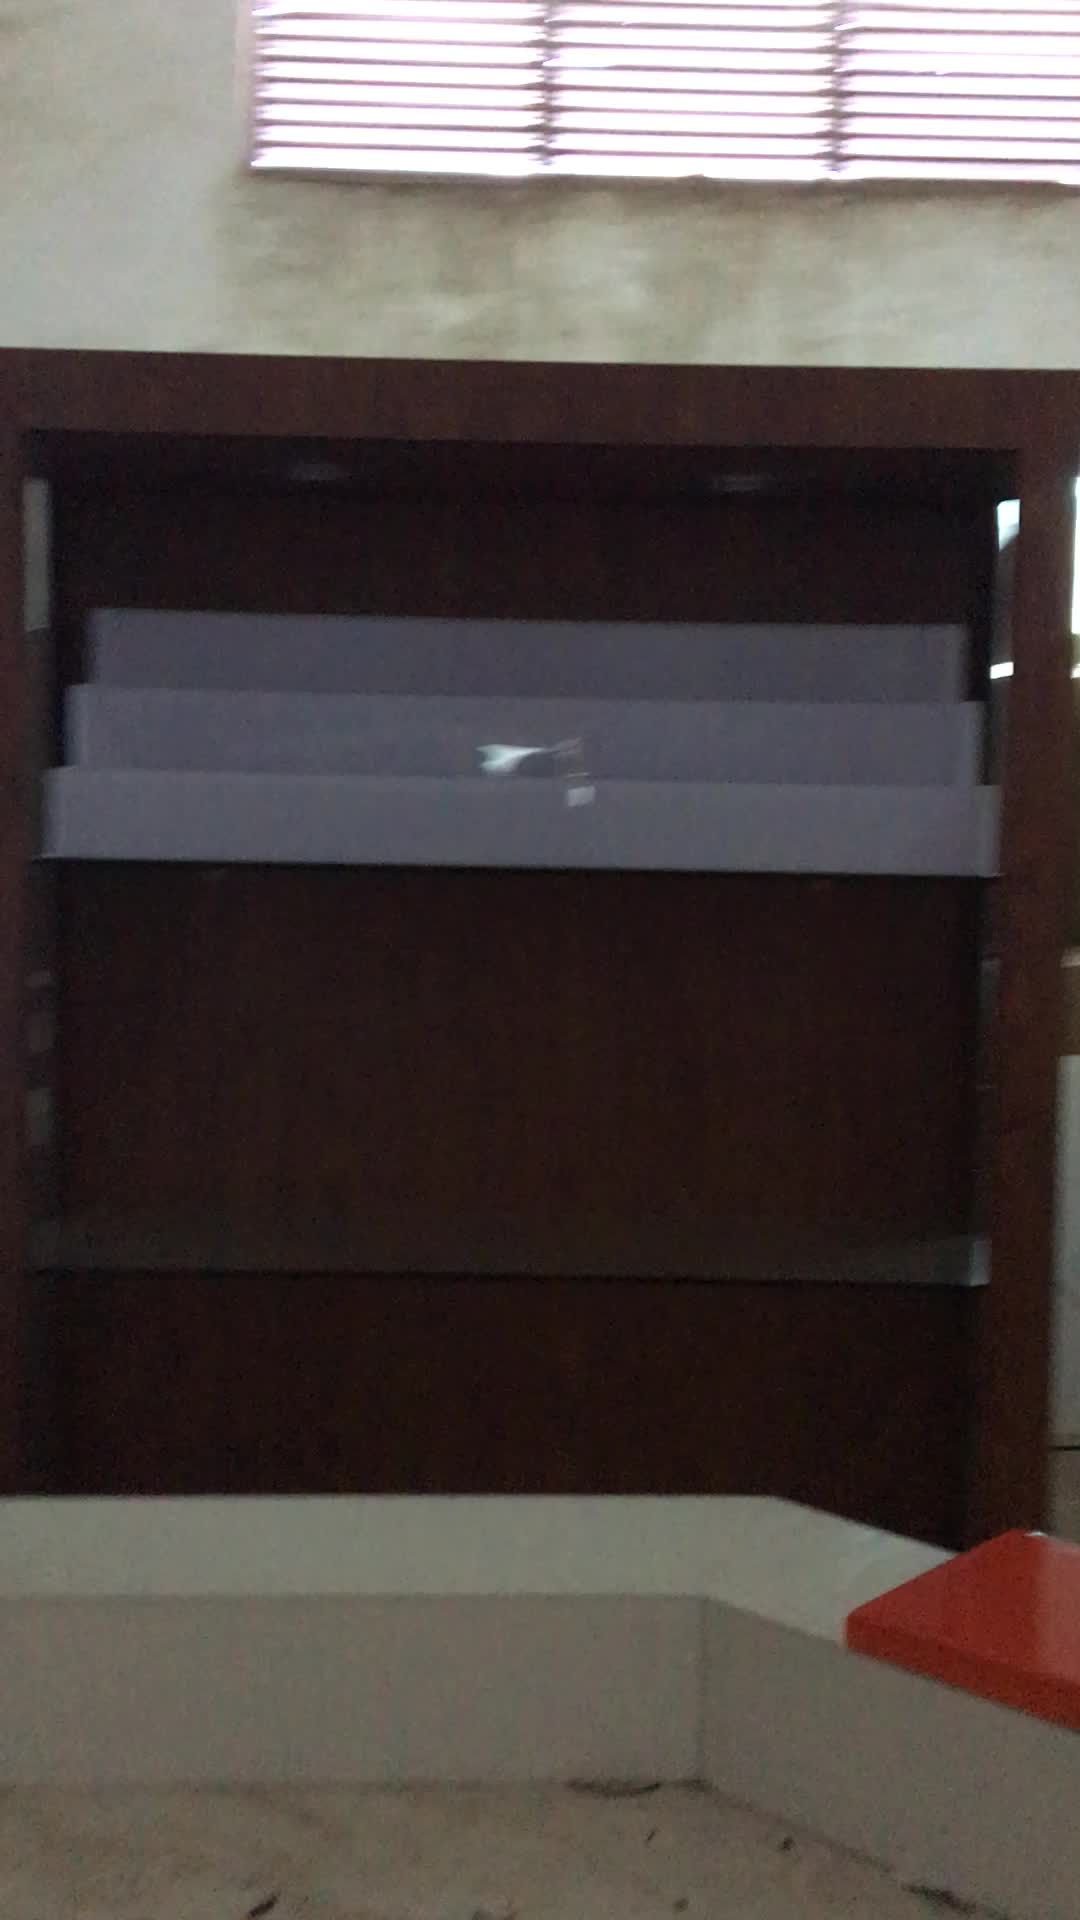 Cabinet Design For Clothes clothes display rack / clothes cabinet design / cloth shop counter